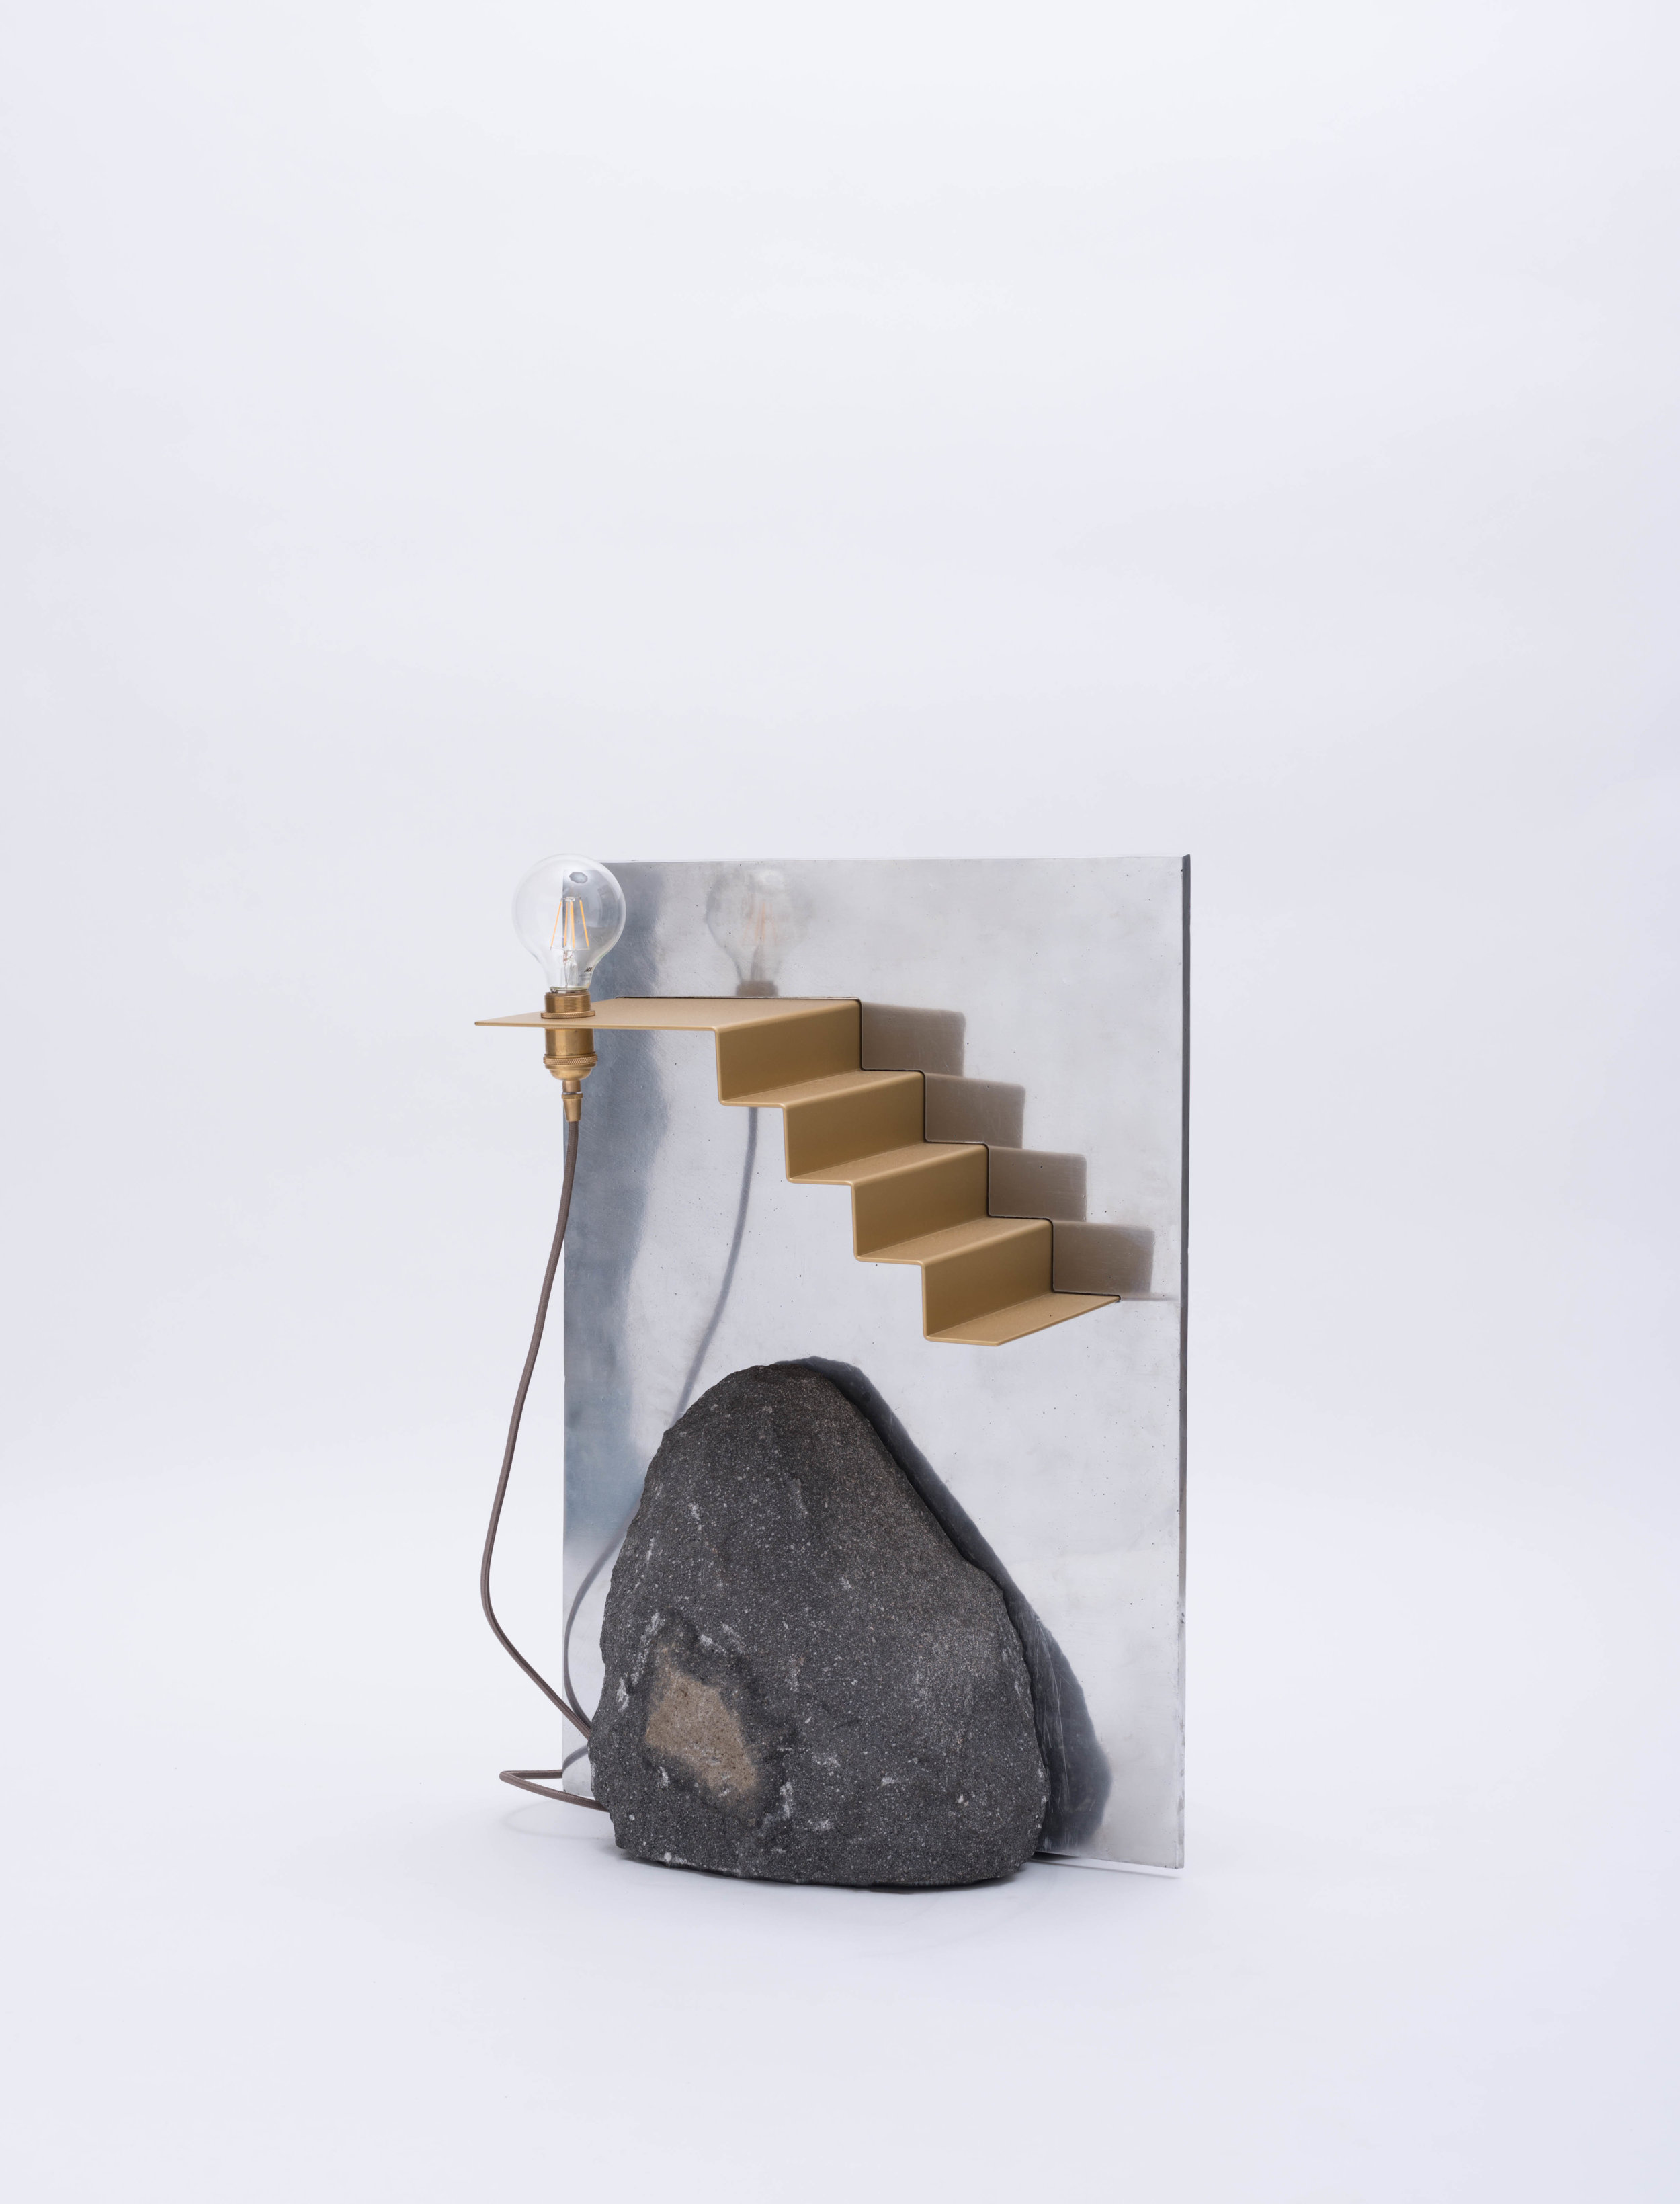 Montaña/ Pirámide Floor Lamp - Made with volcanic rock, hand-cast aluminum, powder-coated steel and brass hardware, the lamp explores the literal and symbolic representation of a mountain.